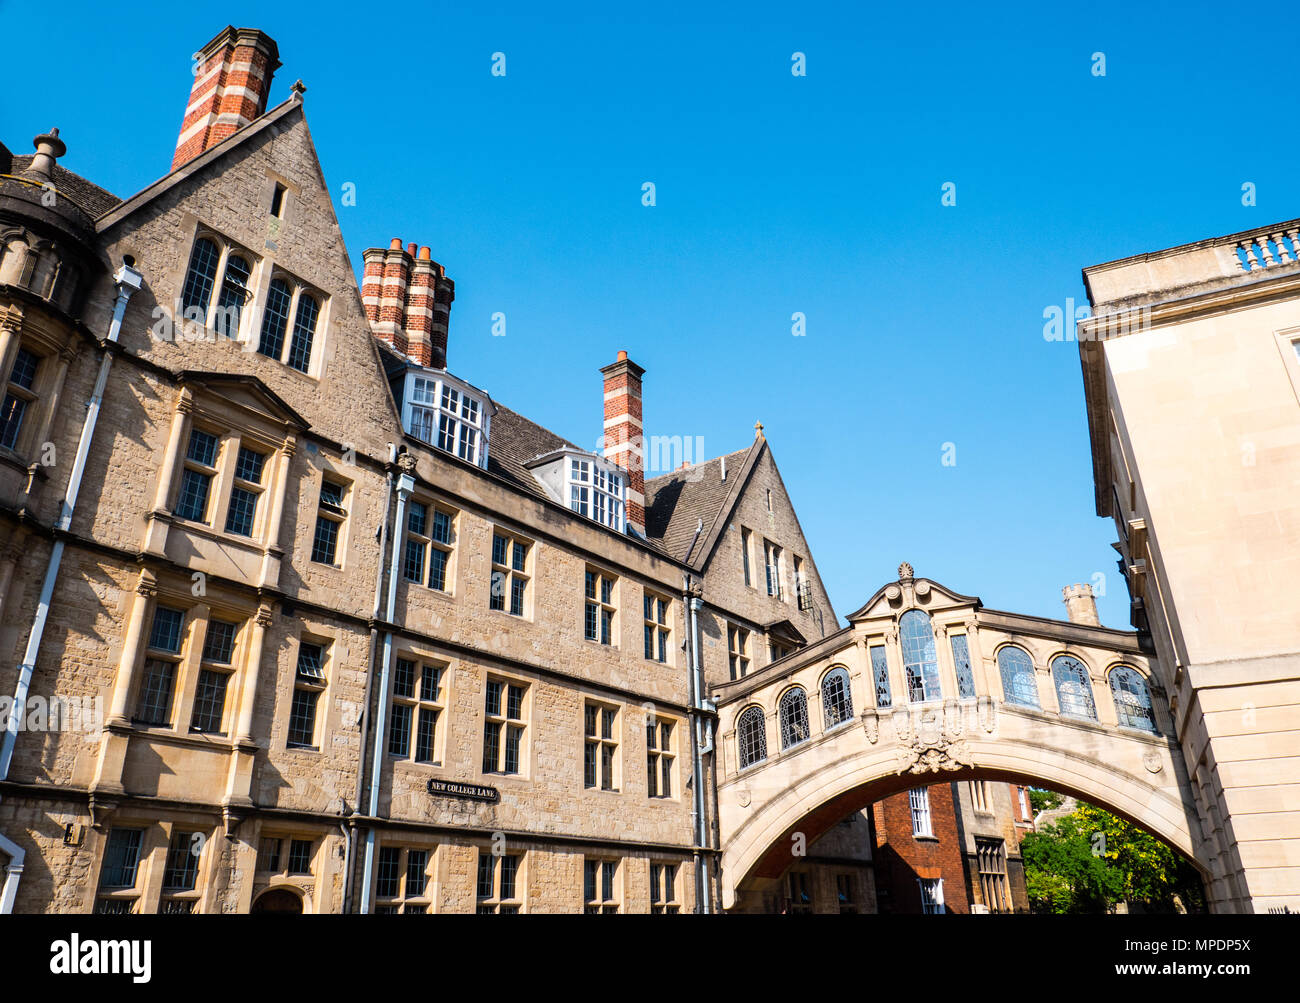 Pont des Soupirs, Skyway, Hertford College, New College Lane, Oxford, Oxfordshire, England, UK, FR. Photo Stock